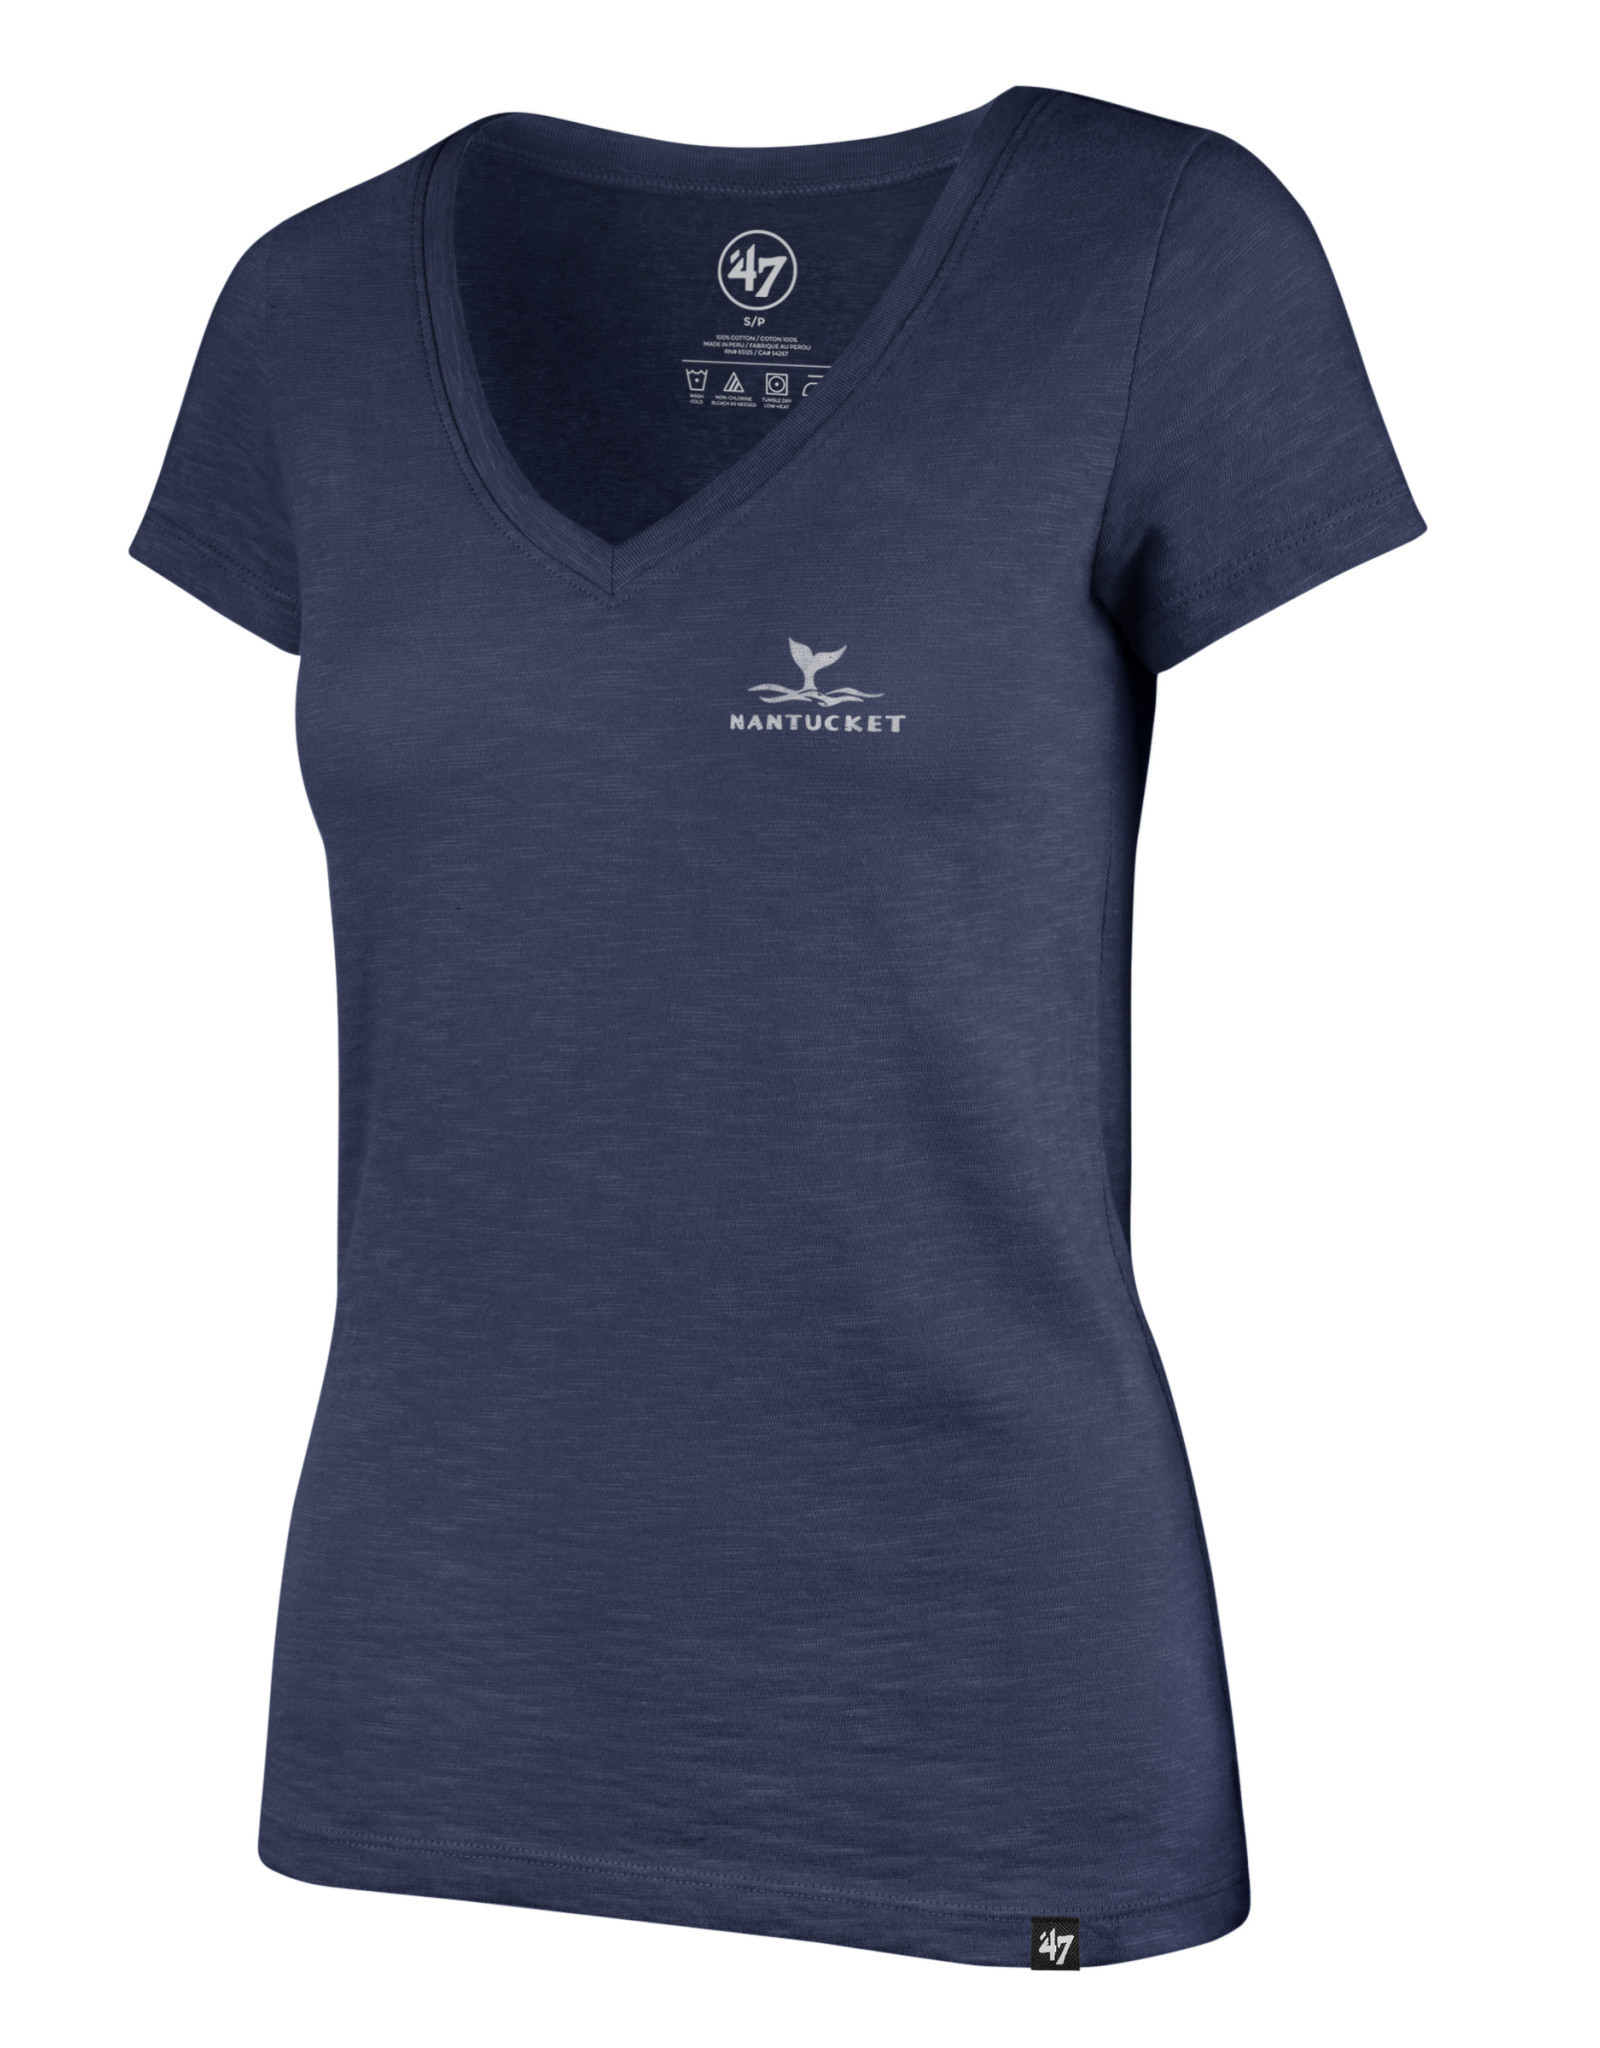 47 Brand 47 Ladies Tee V Neck Whale tail